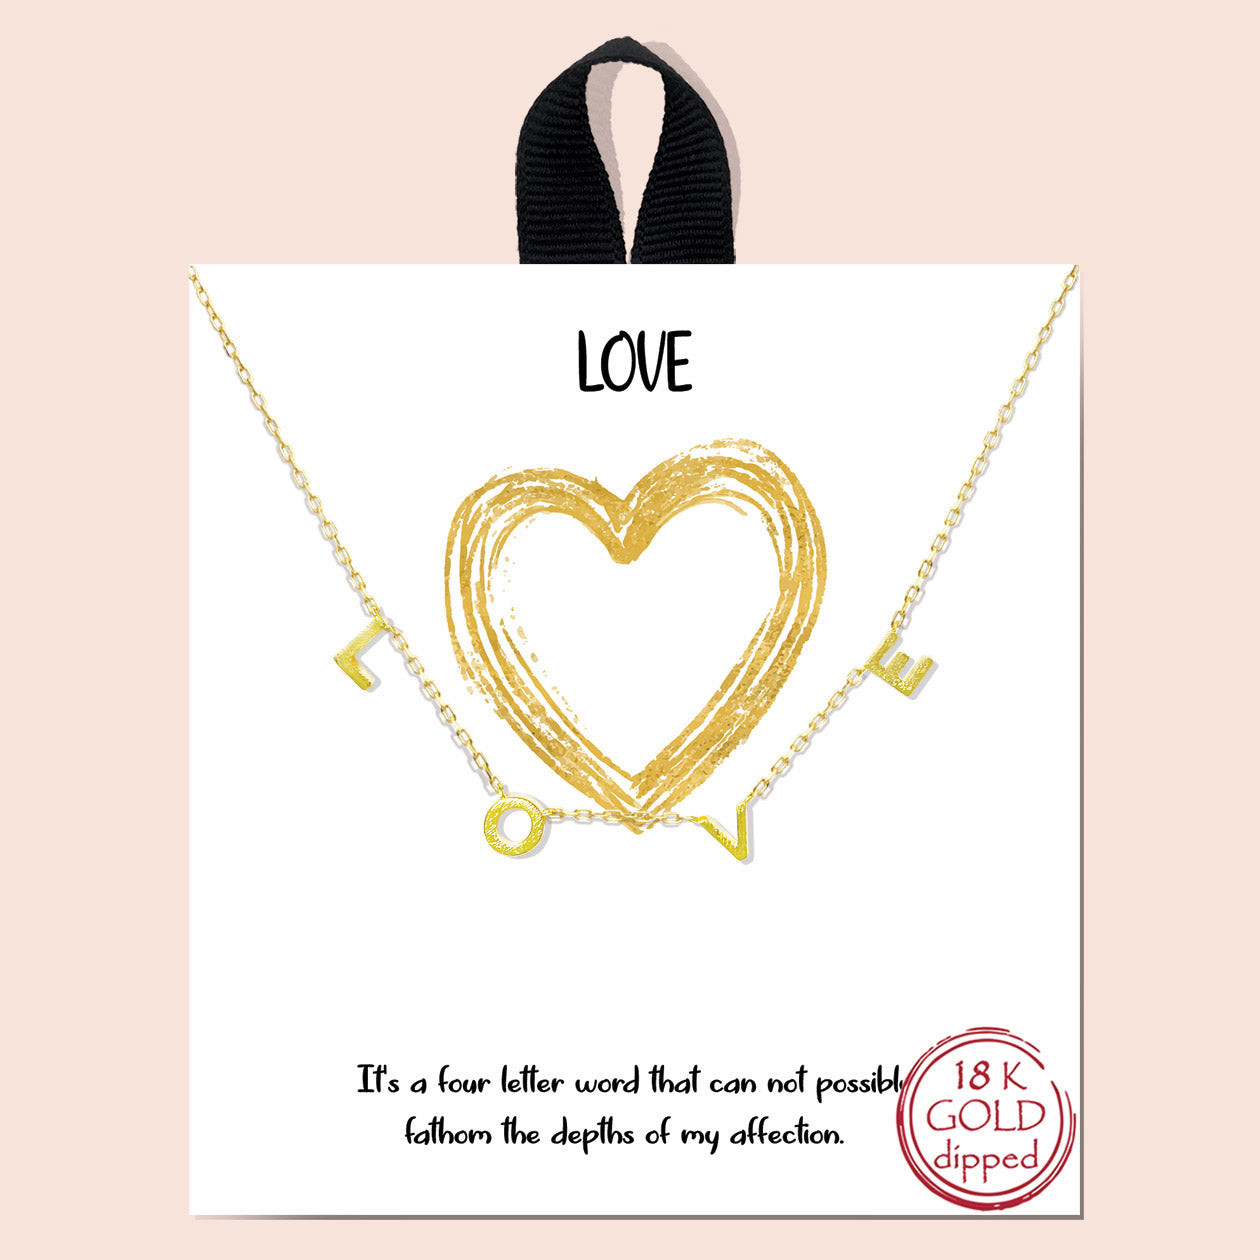 L-O-V-E this Love Necklace